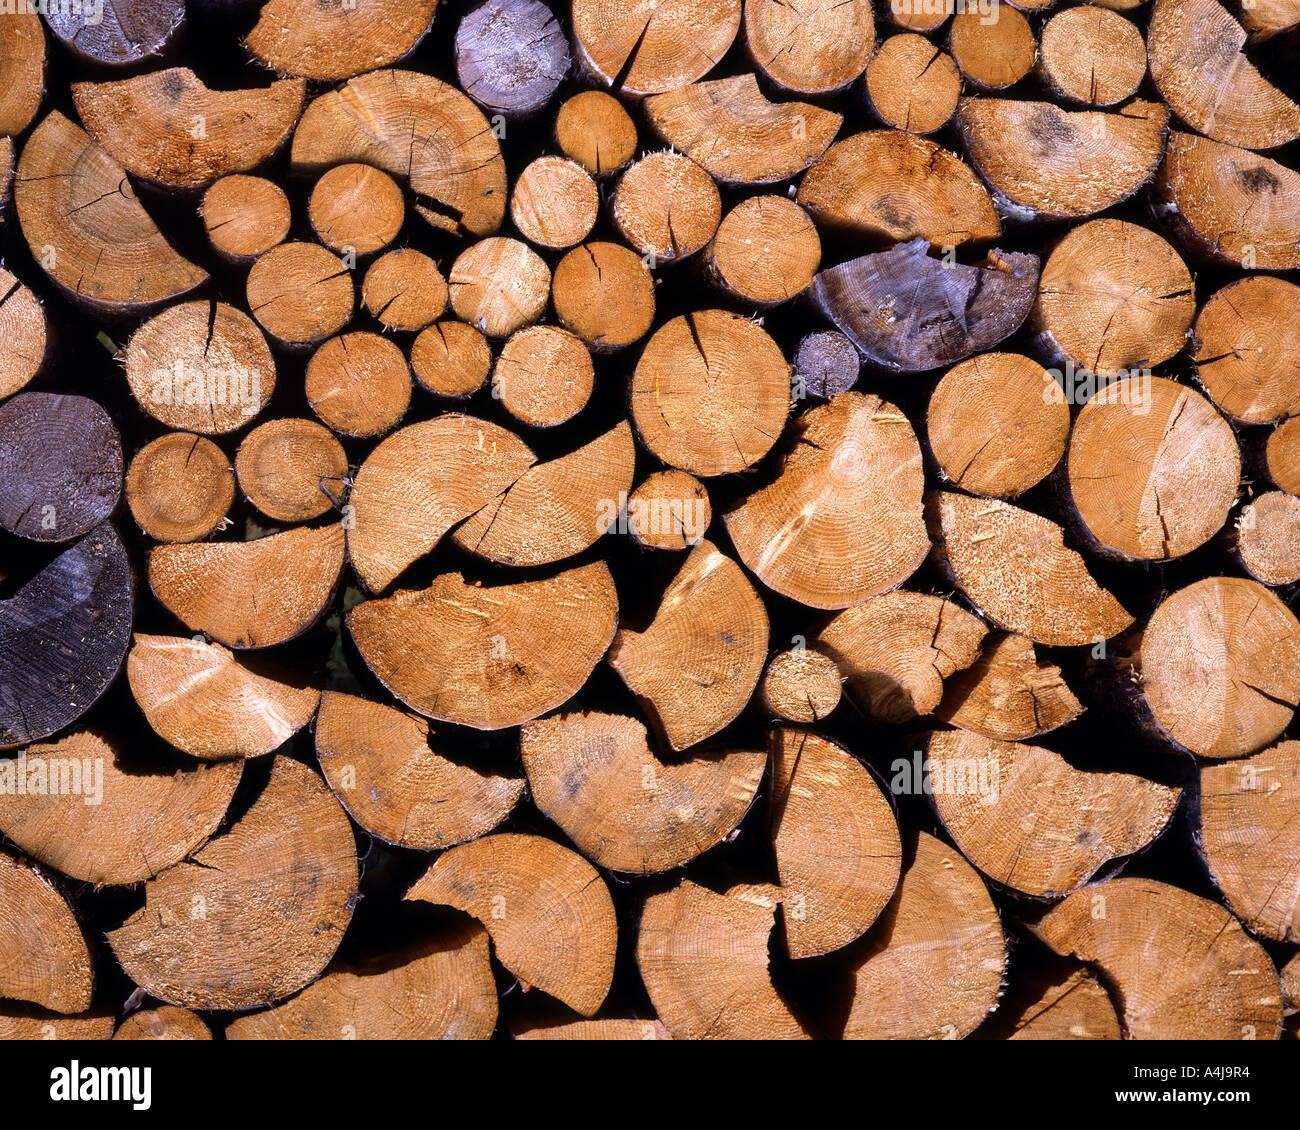 DE - BAVARIA:  Pile of Wood - Stock Image